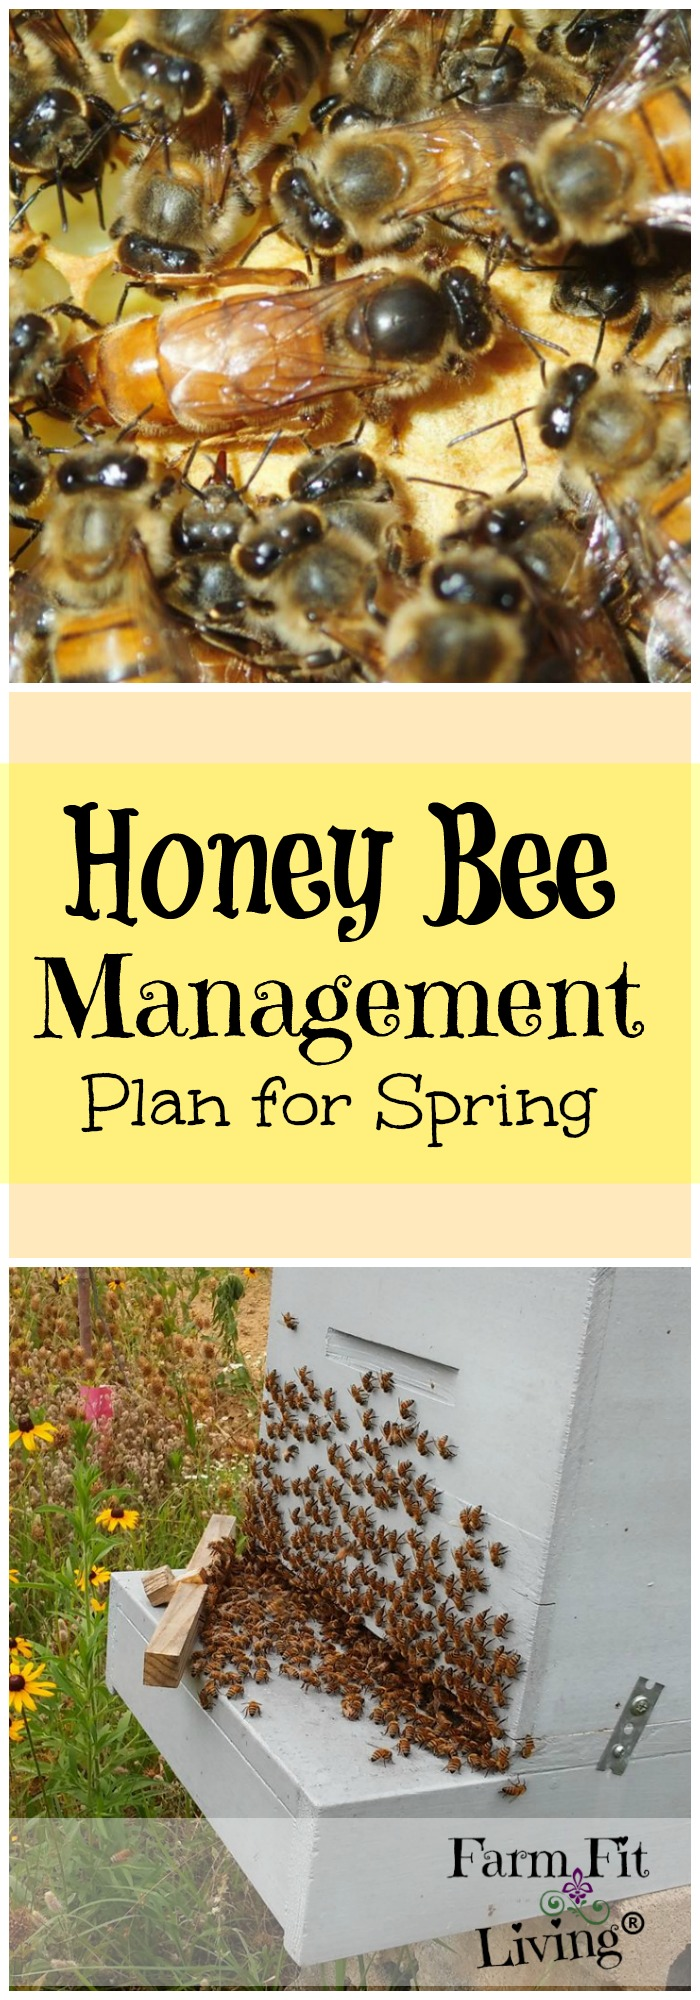 So, your bees made it through the winter. What's the next step? Here is a honey bee management plan for spring time beekeeping.